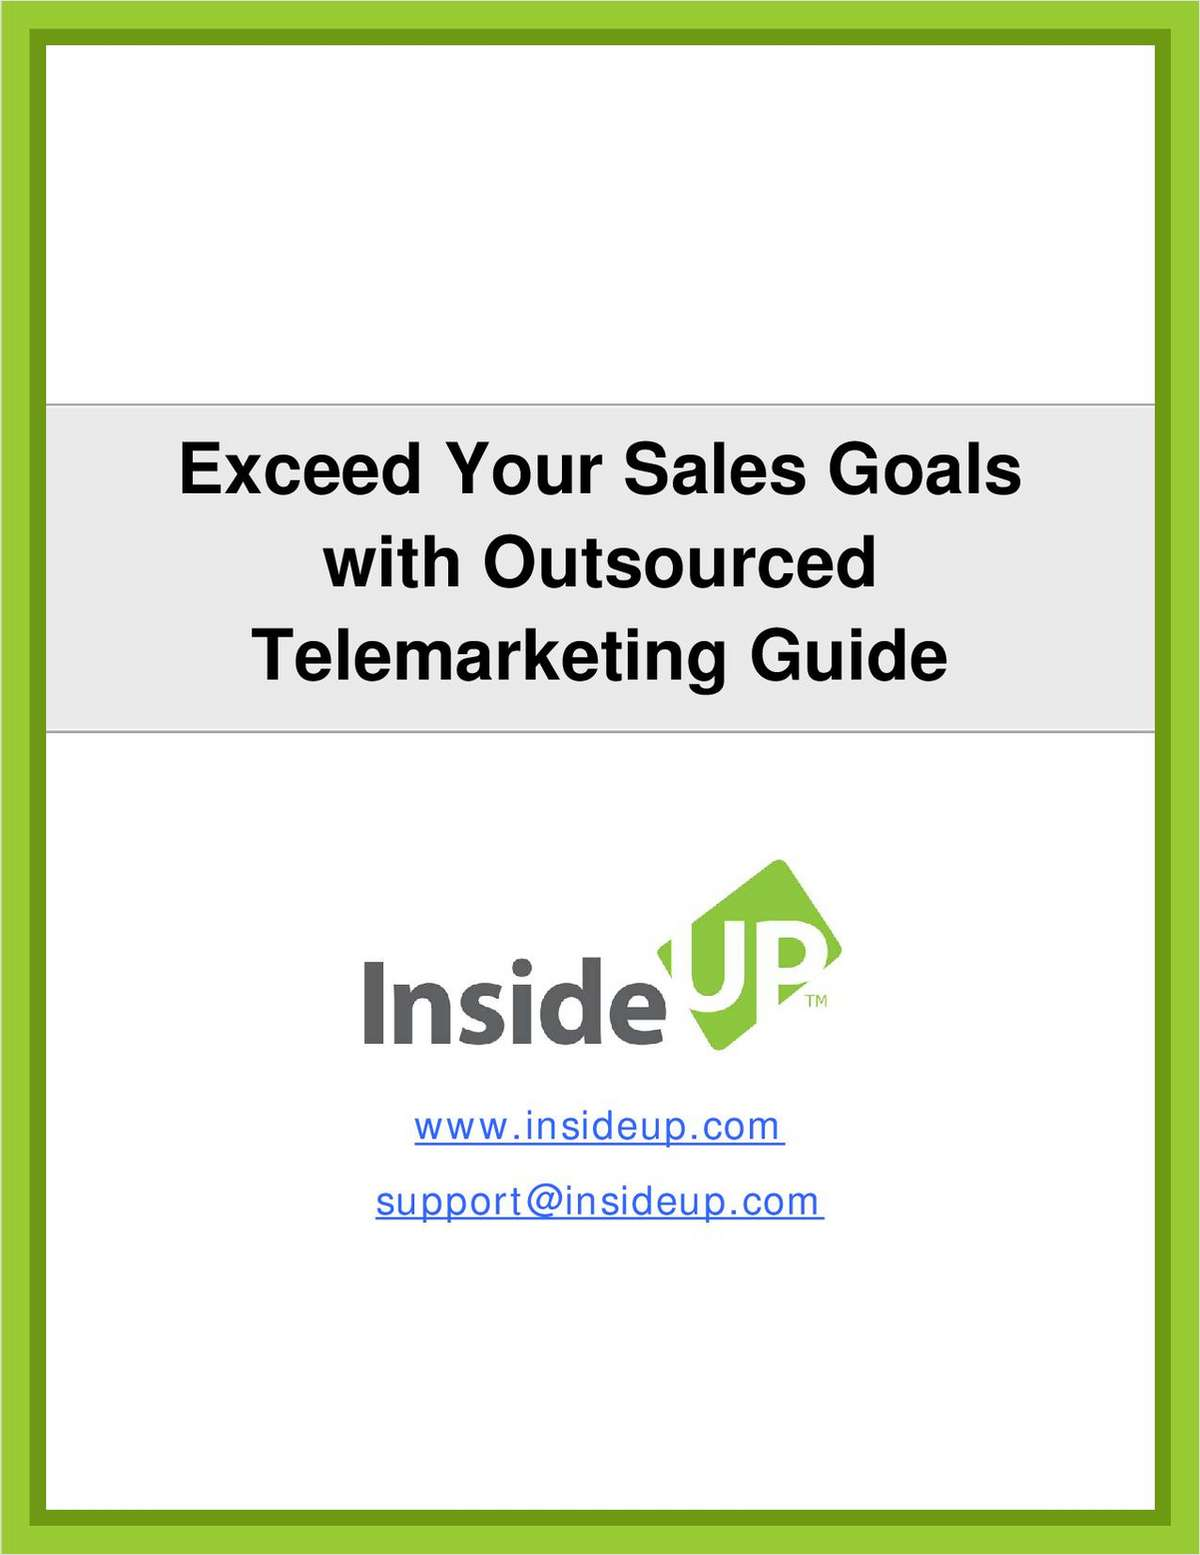 Exceed Your Sales Goals by Outsourced Telemarketing